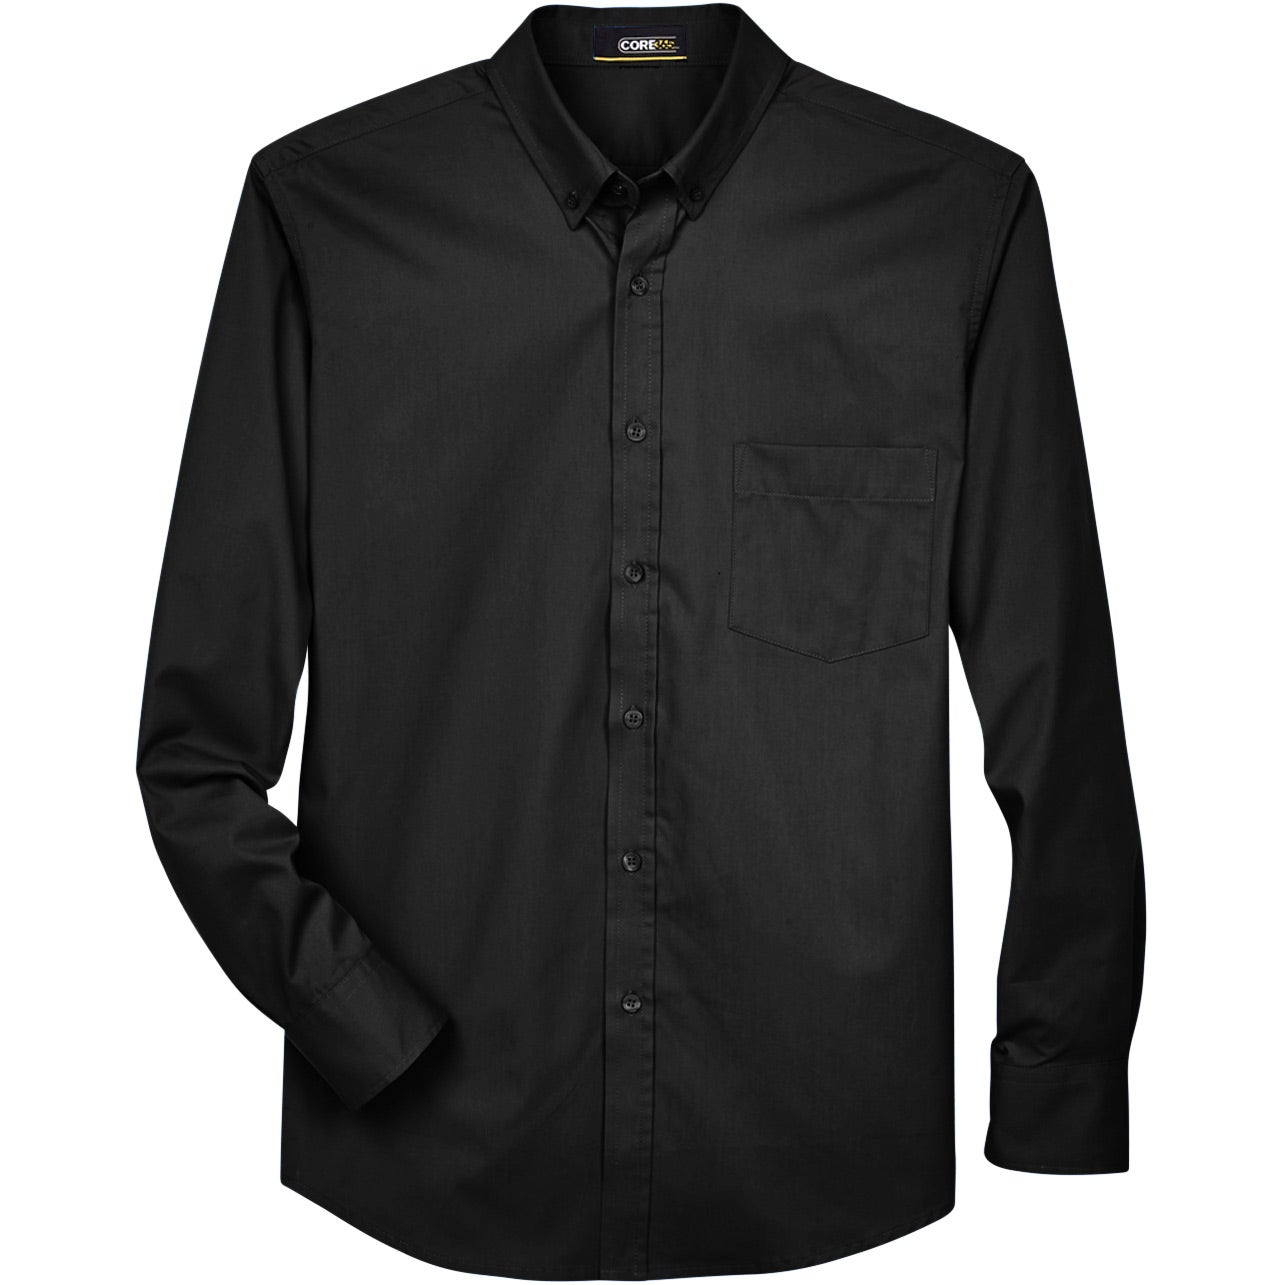 Core 365 Operate Twill Shirt (Men's, Long-Sleeve)